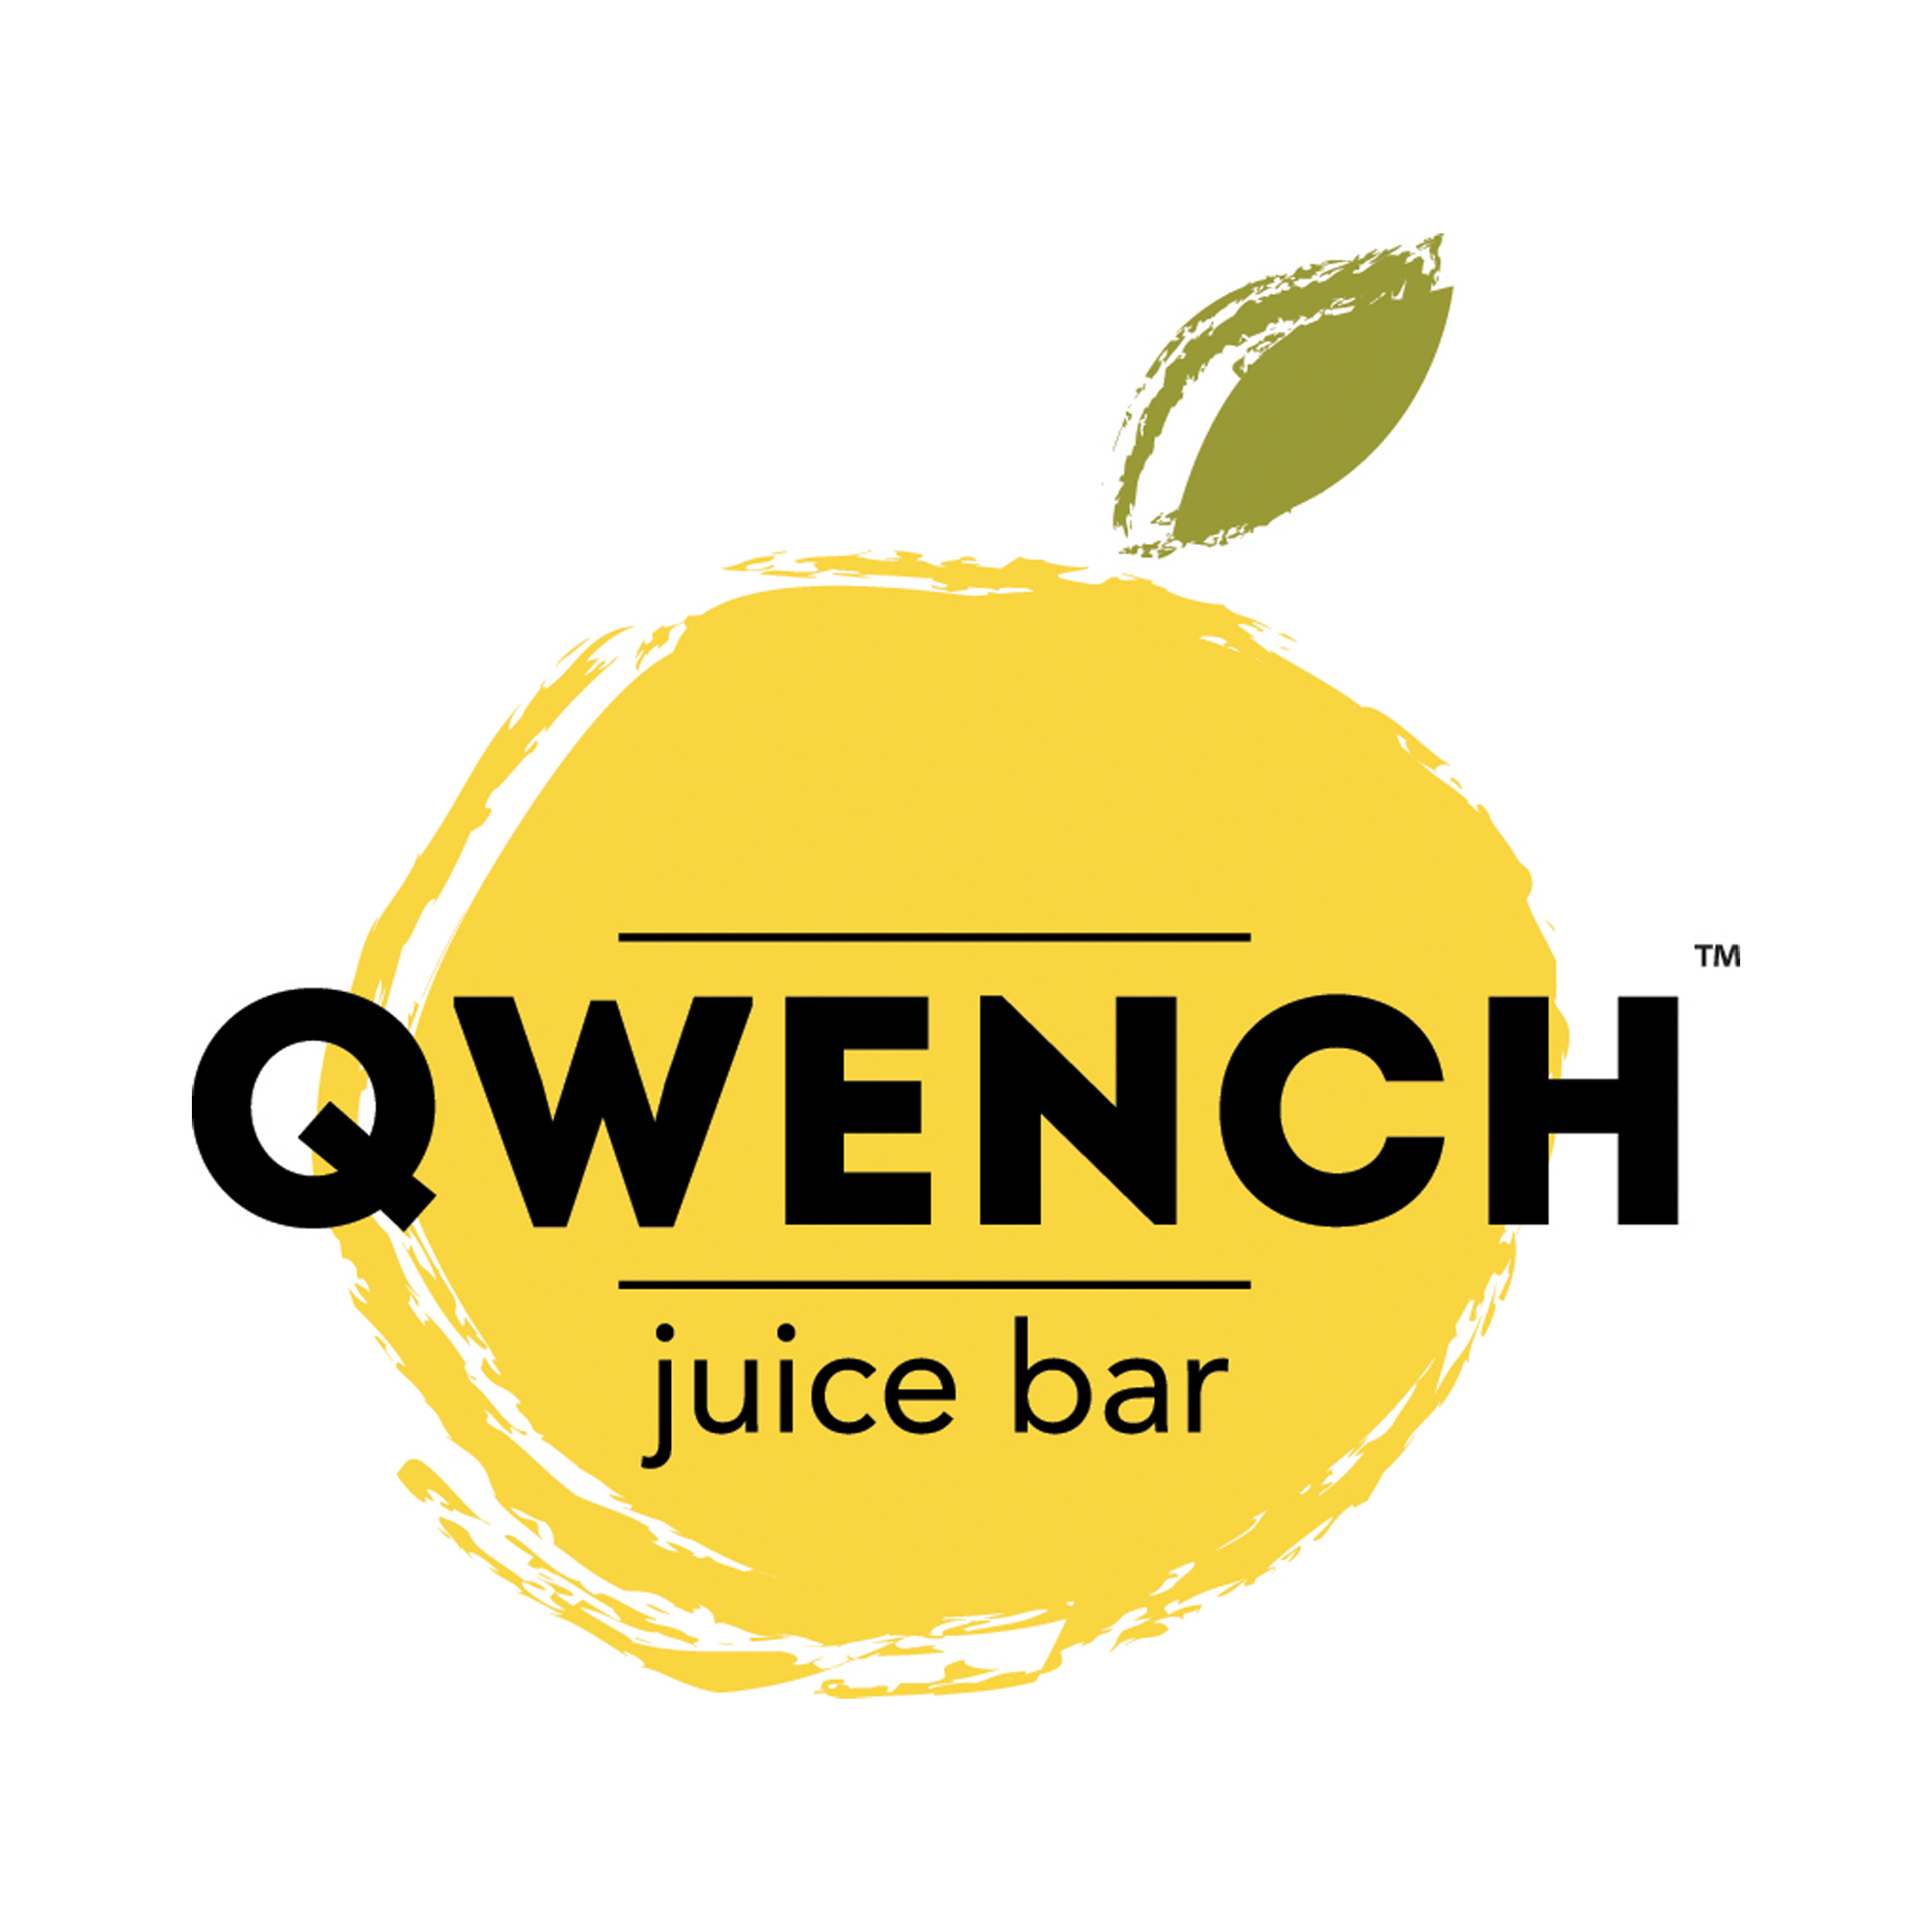 Qwench